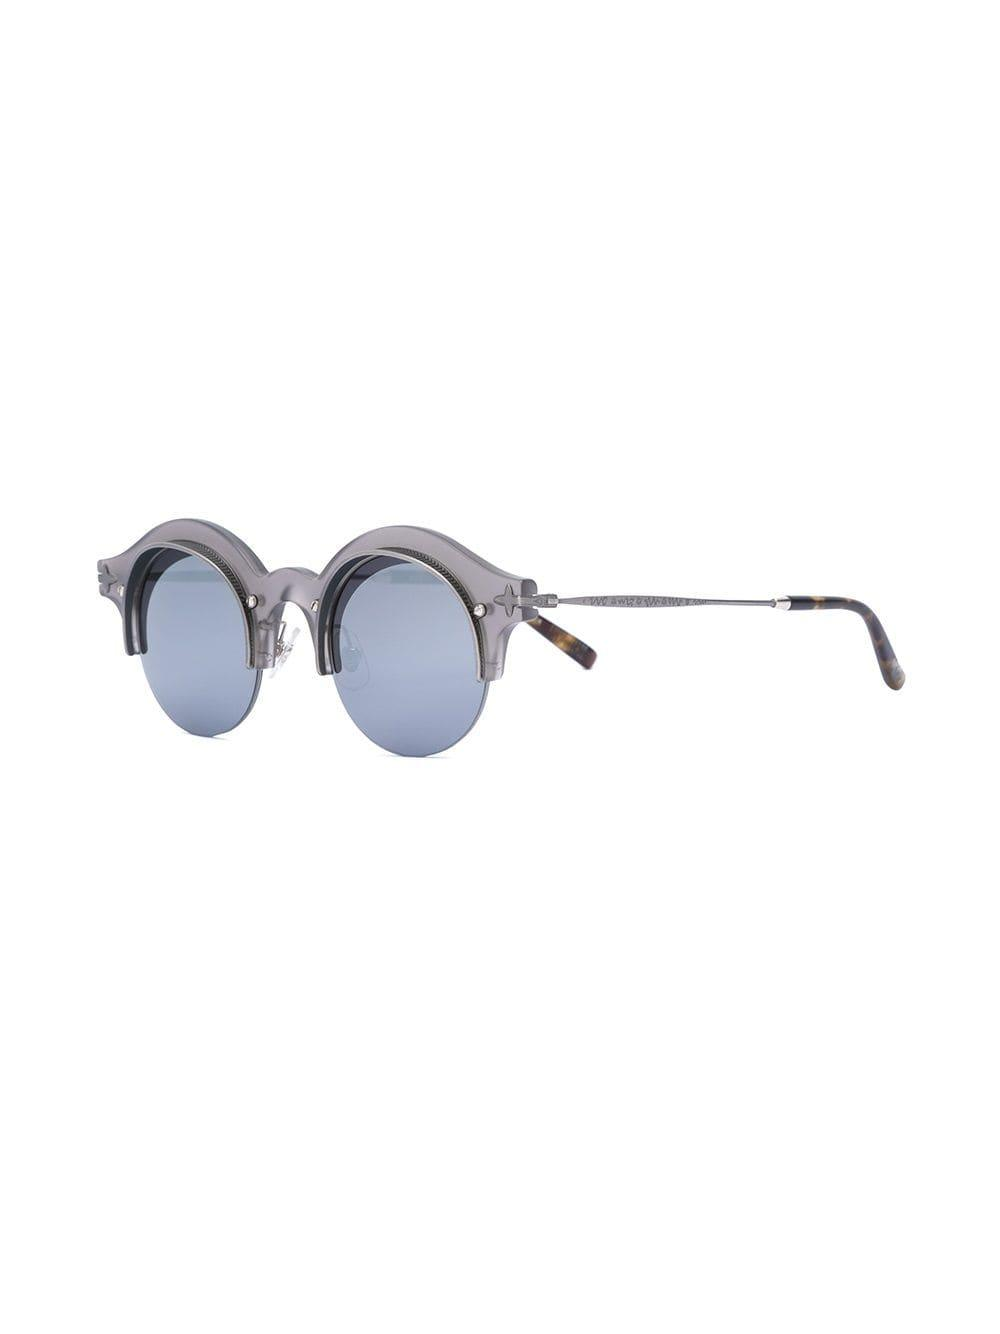 Matsuda Round Shaped Sunglasses in Grey (Grey) for Men